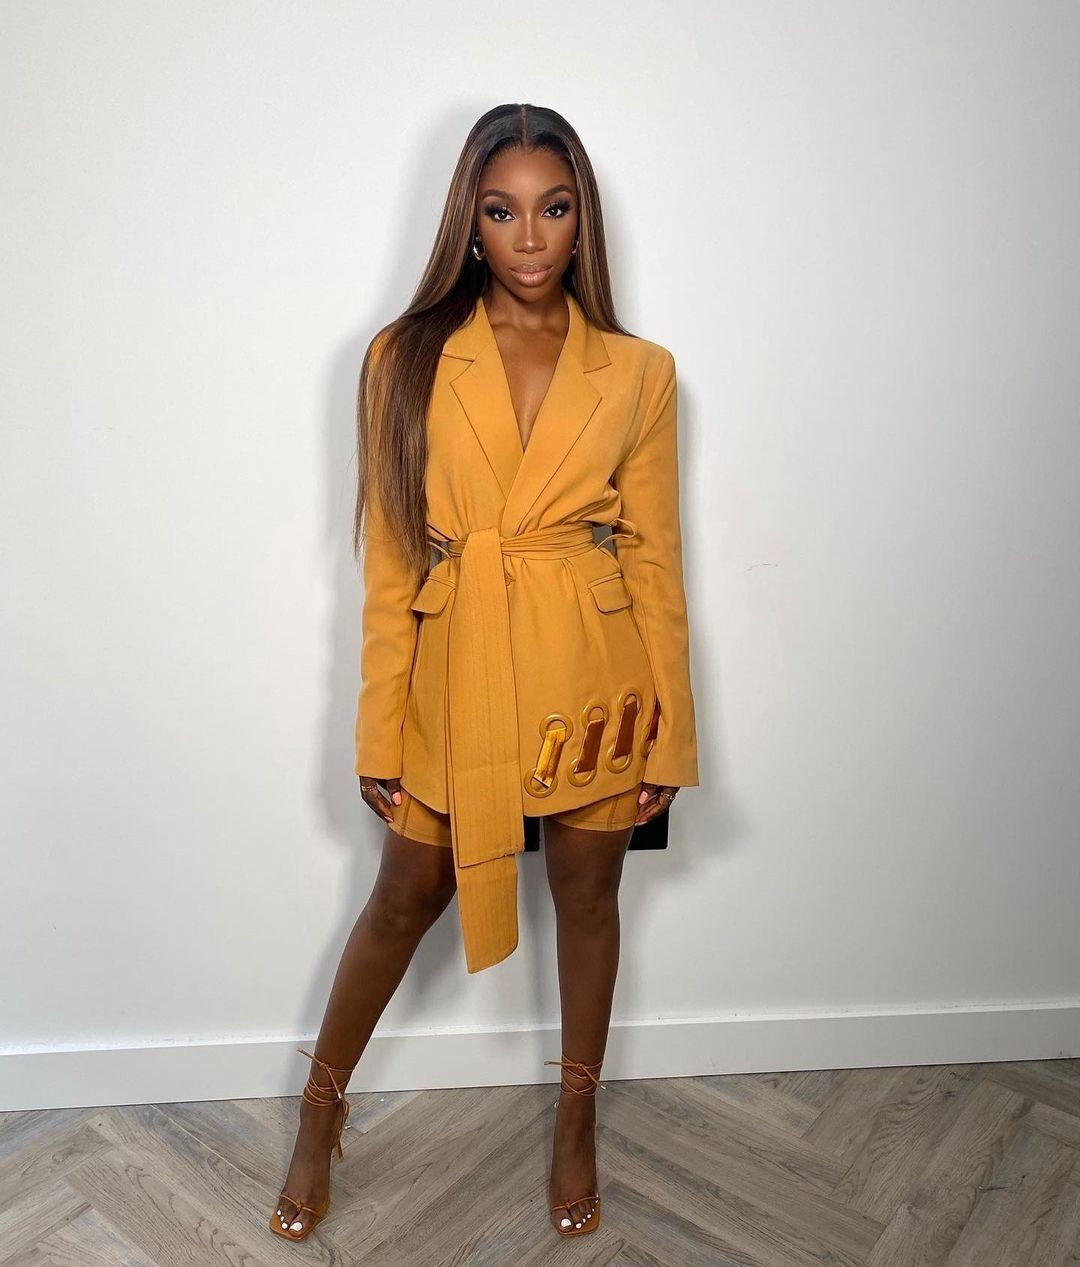 Yewande Biala Keeps It Enviable For The Weekend